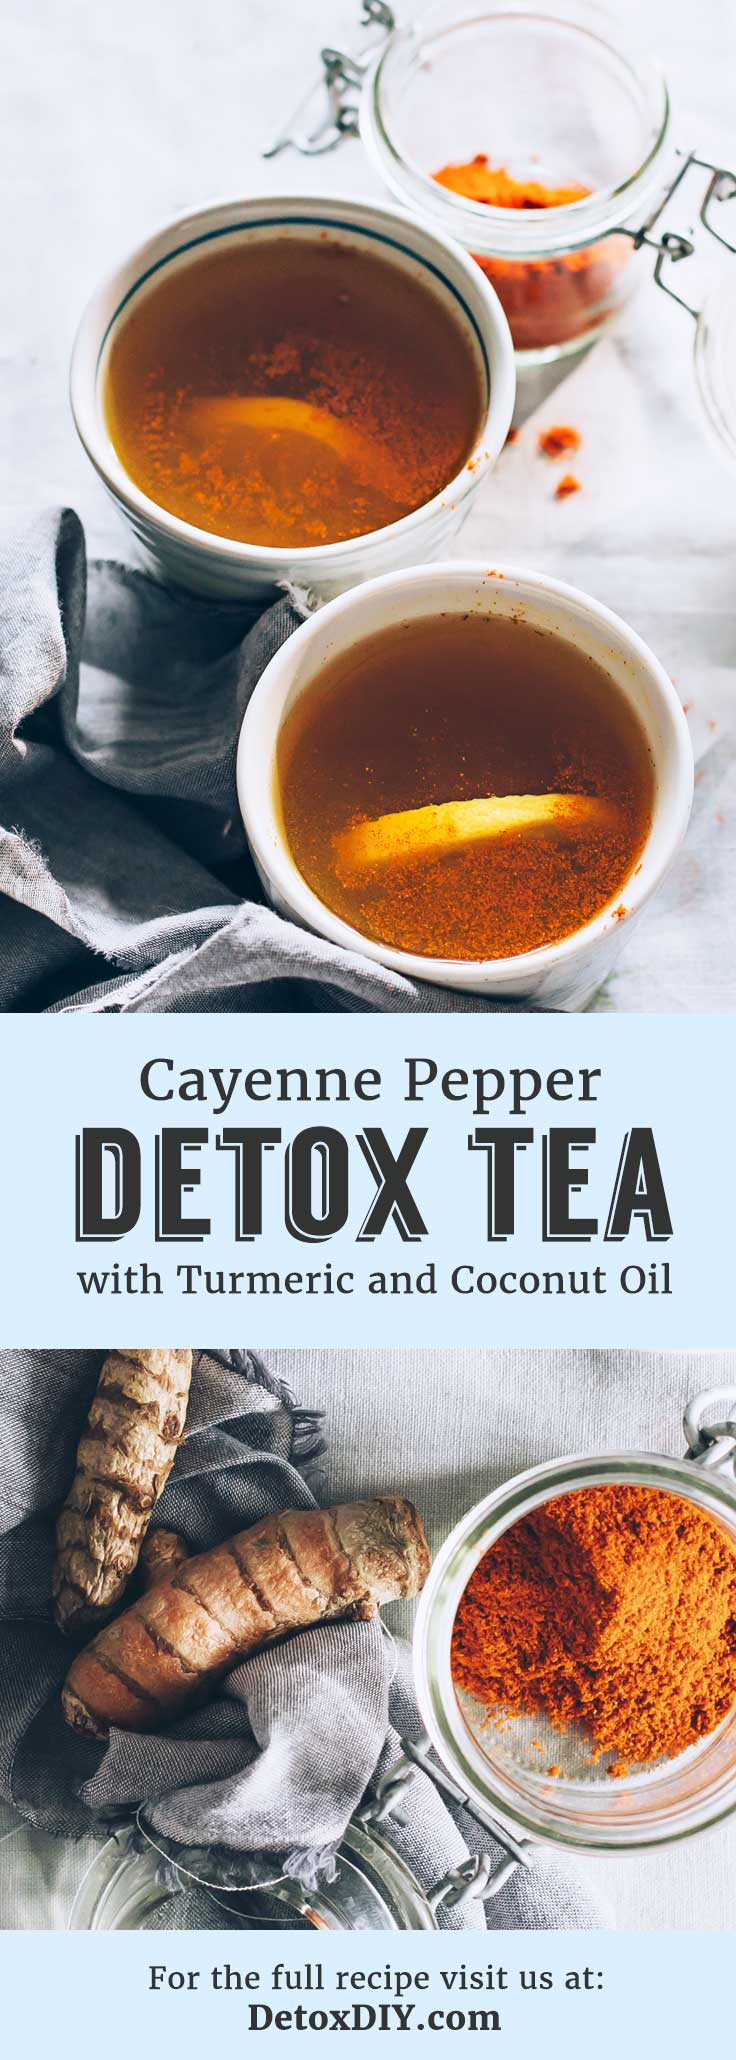 This spicy cayenne pepper tea is the best drink for a morning kickstart. Try this!